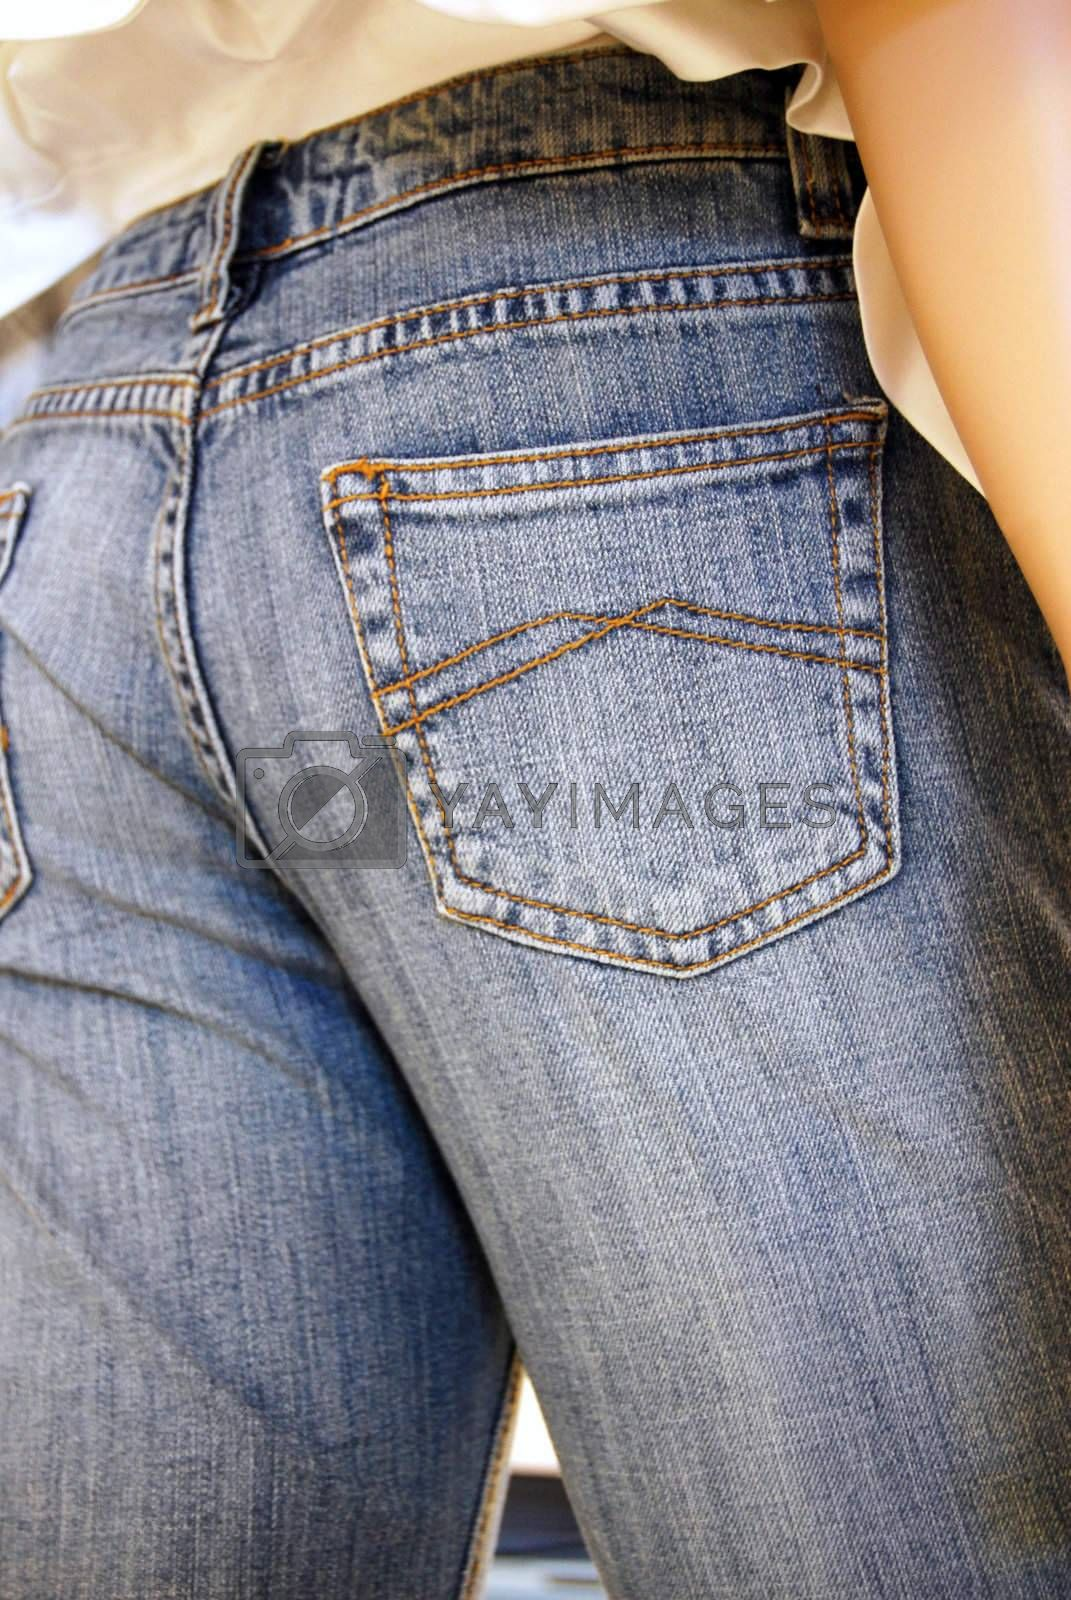 Blue jeans - rear end view.  Great back pocket shot - you can make things stick out very easily, with Photoshop.